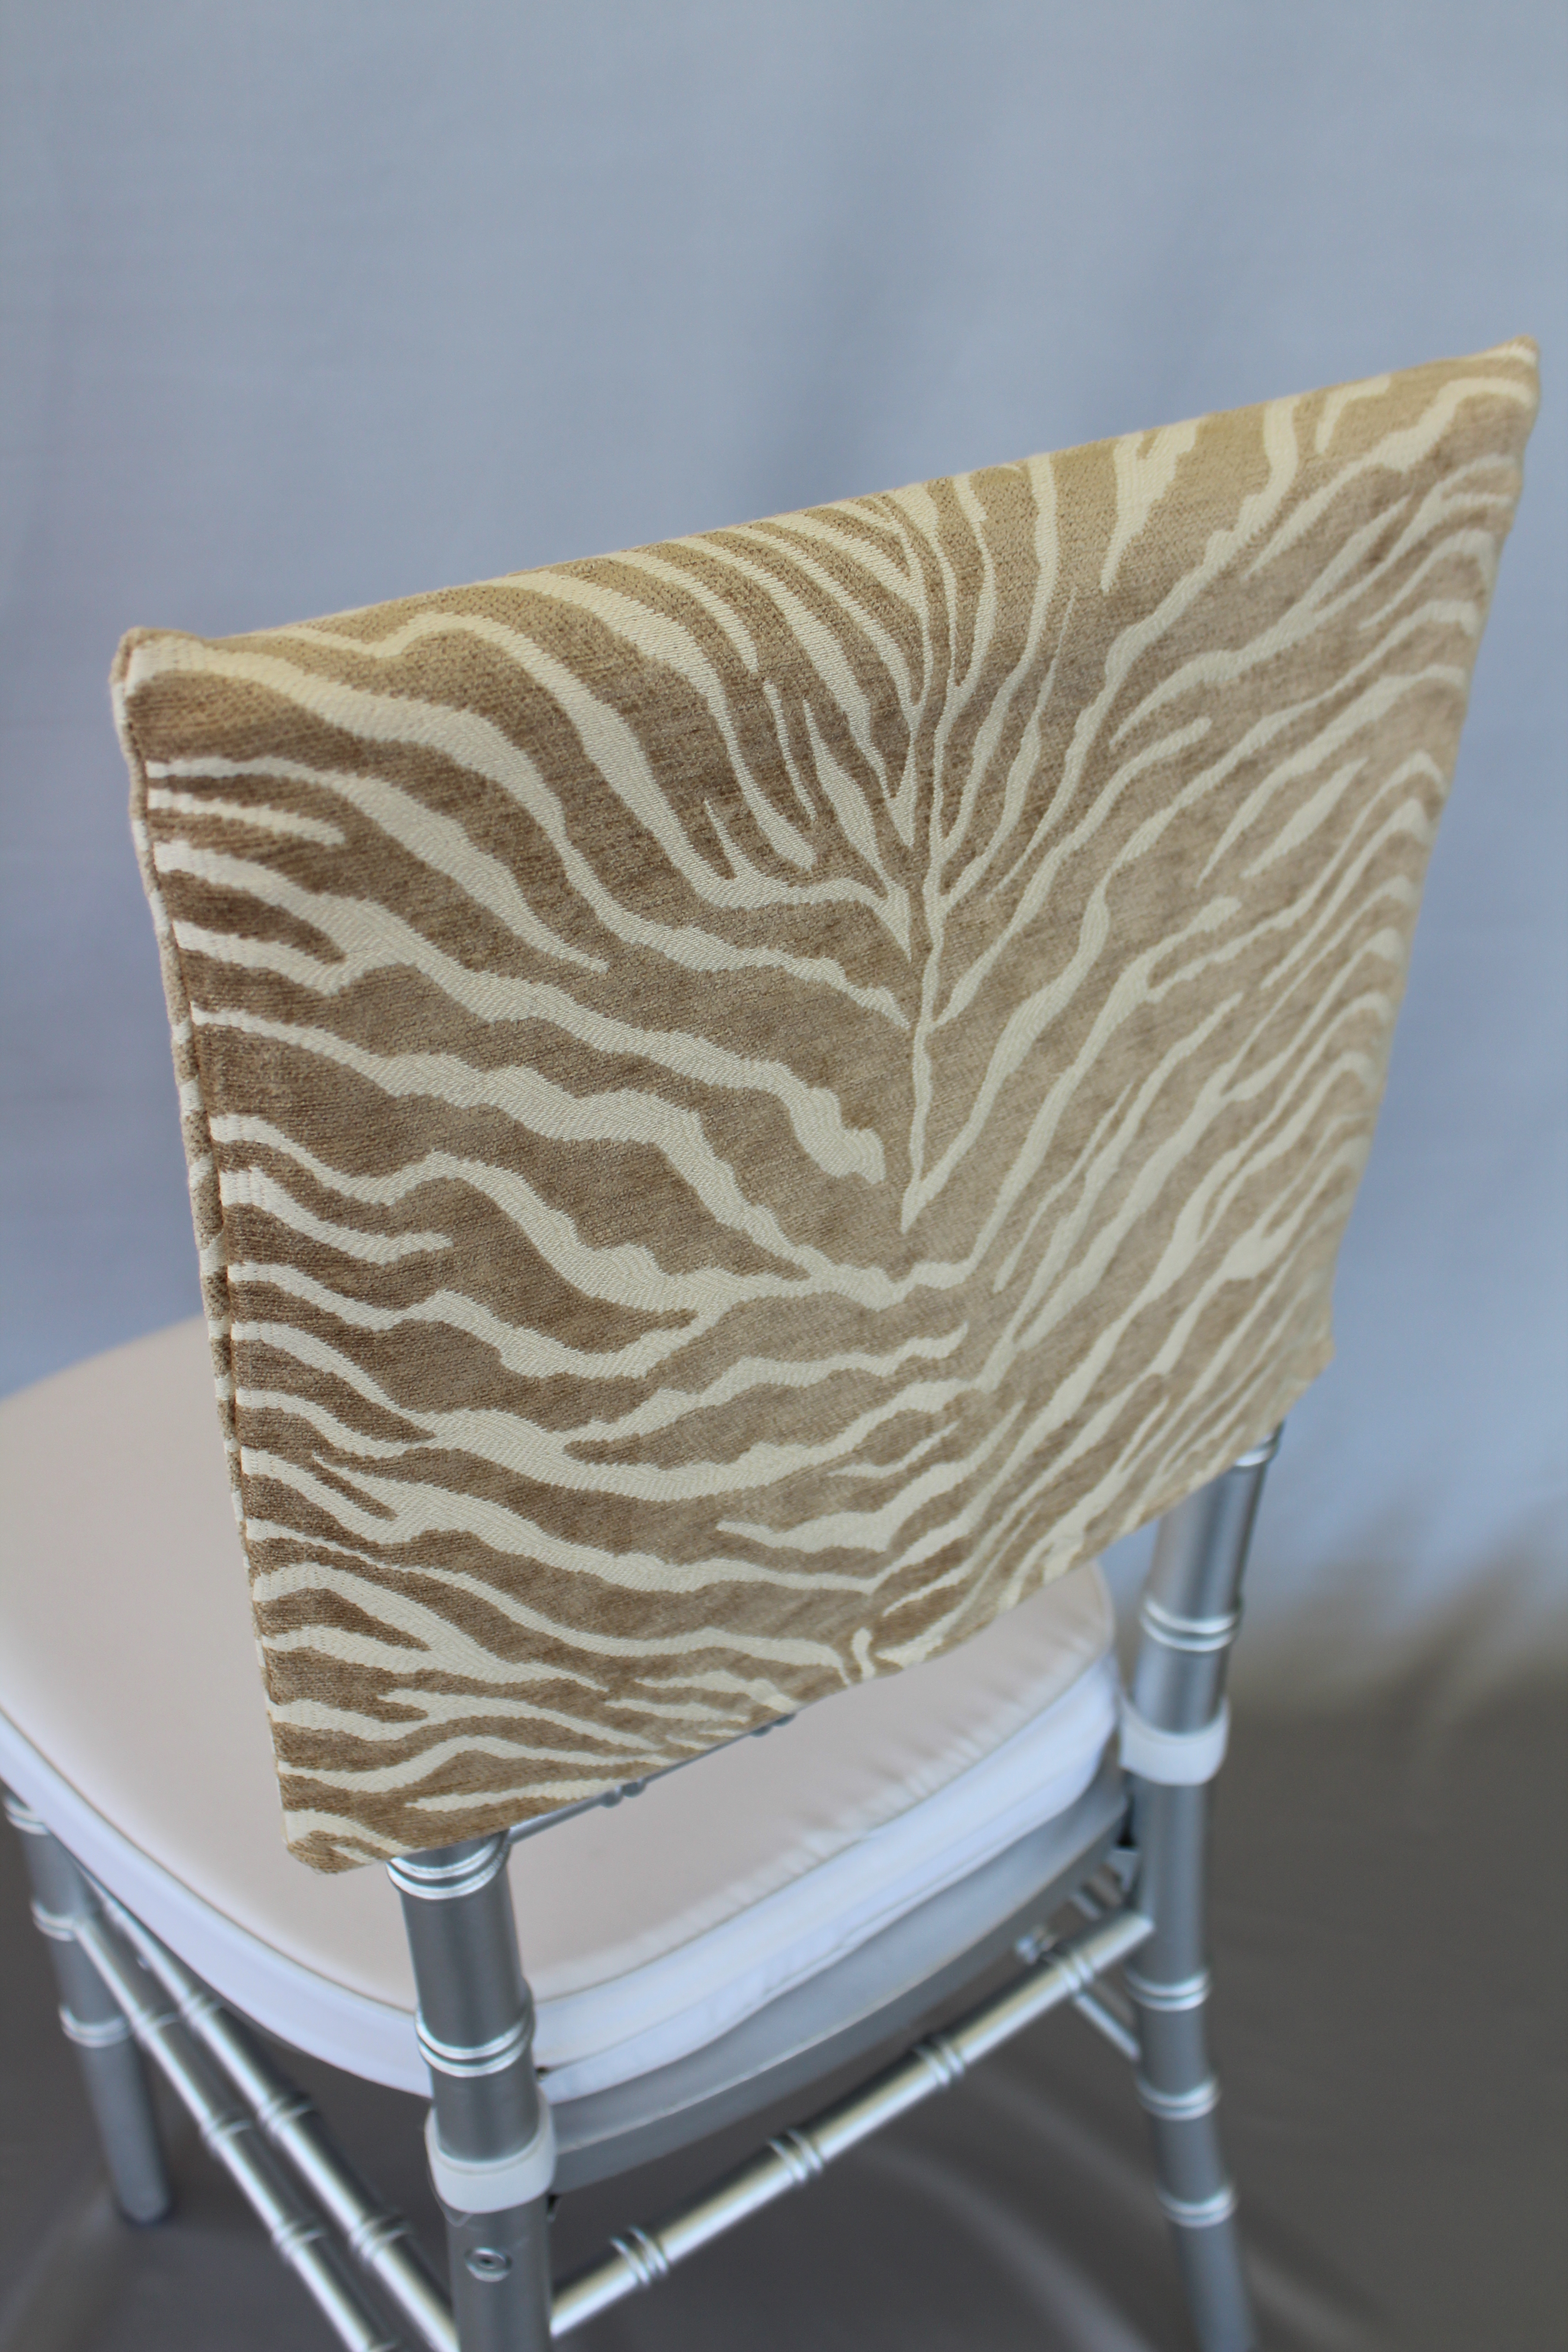 Natural Zebra Chair Cap The Finishing Touch